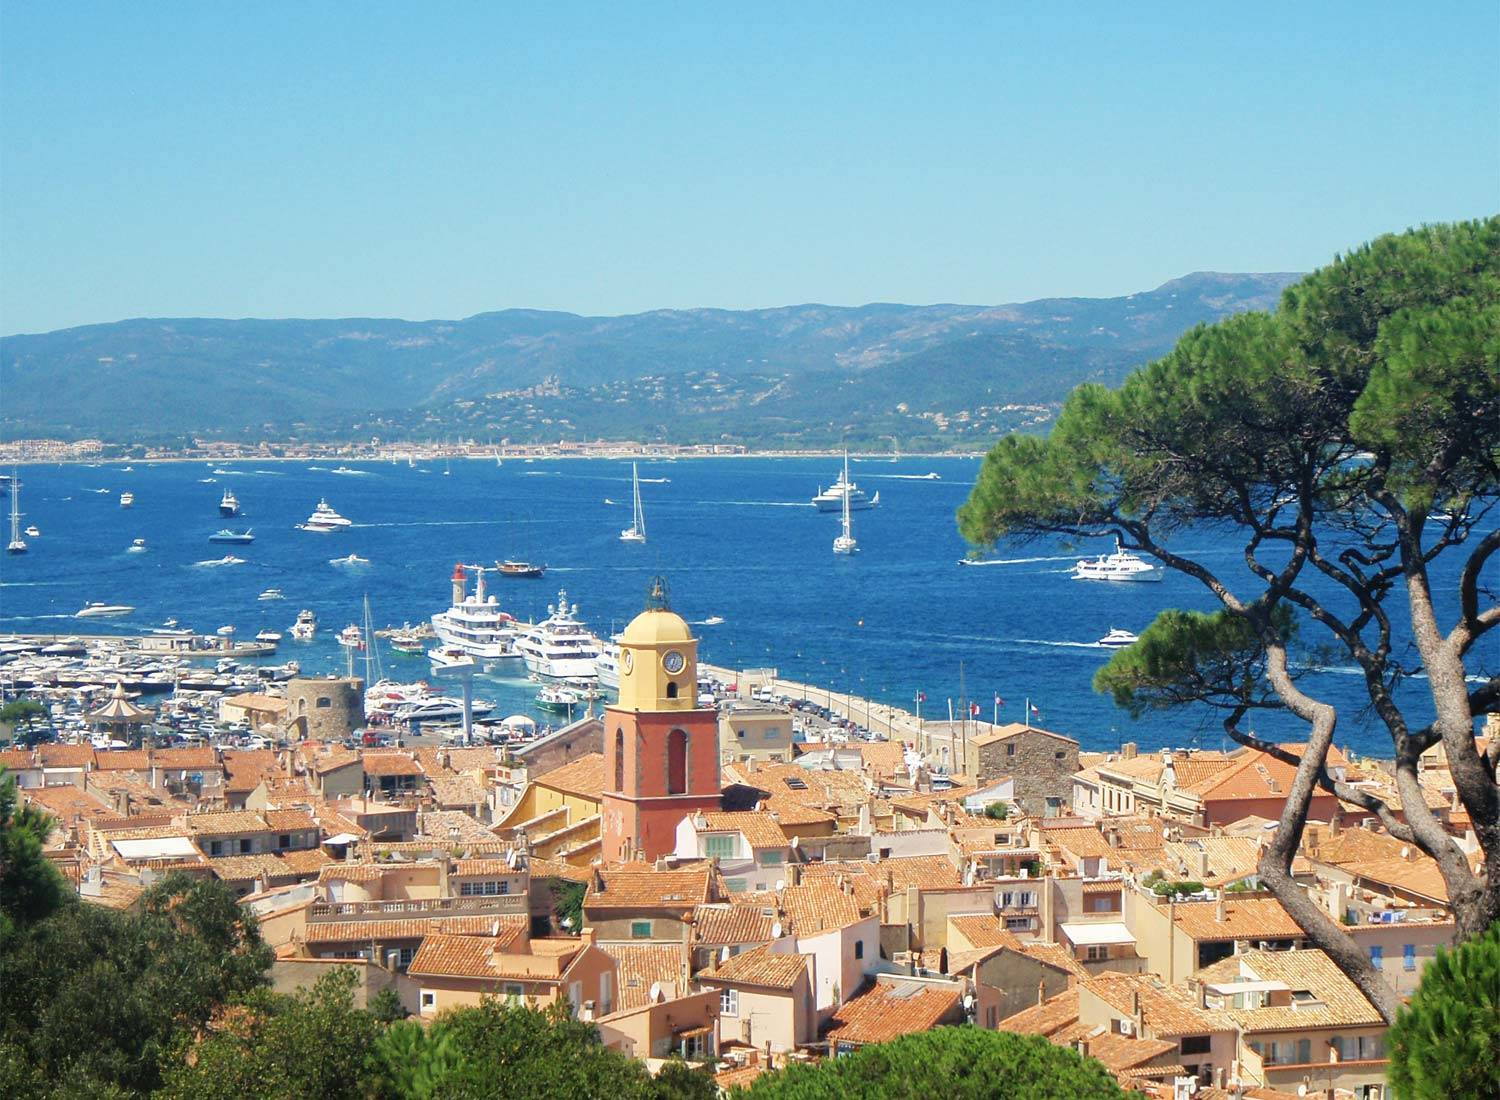 Sightseeing saint tropez for Travel south of france